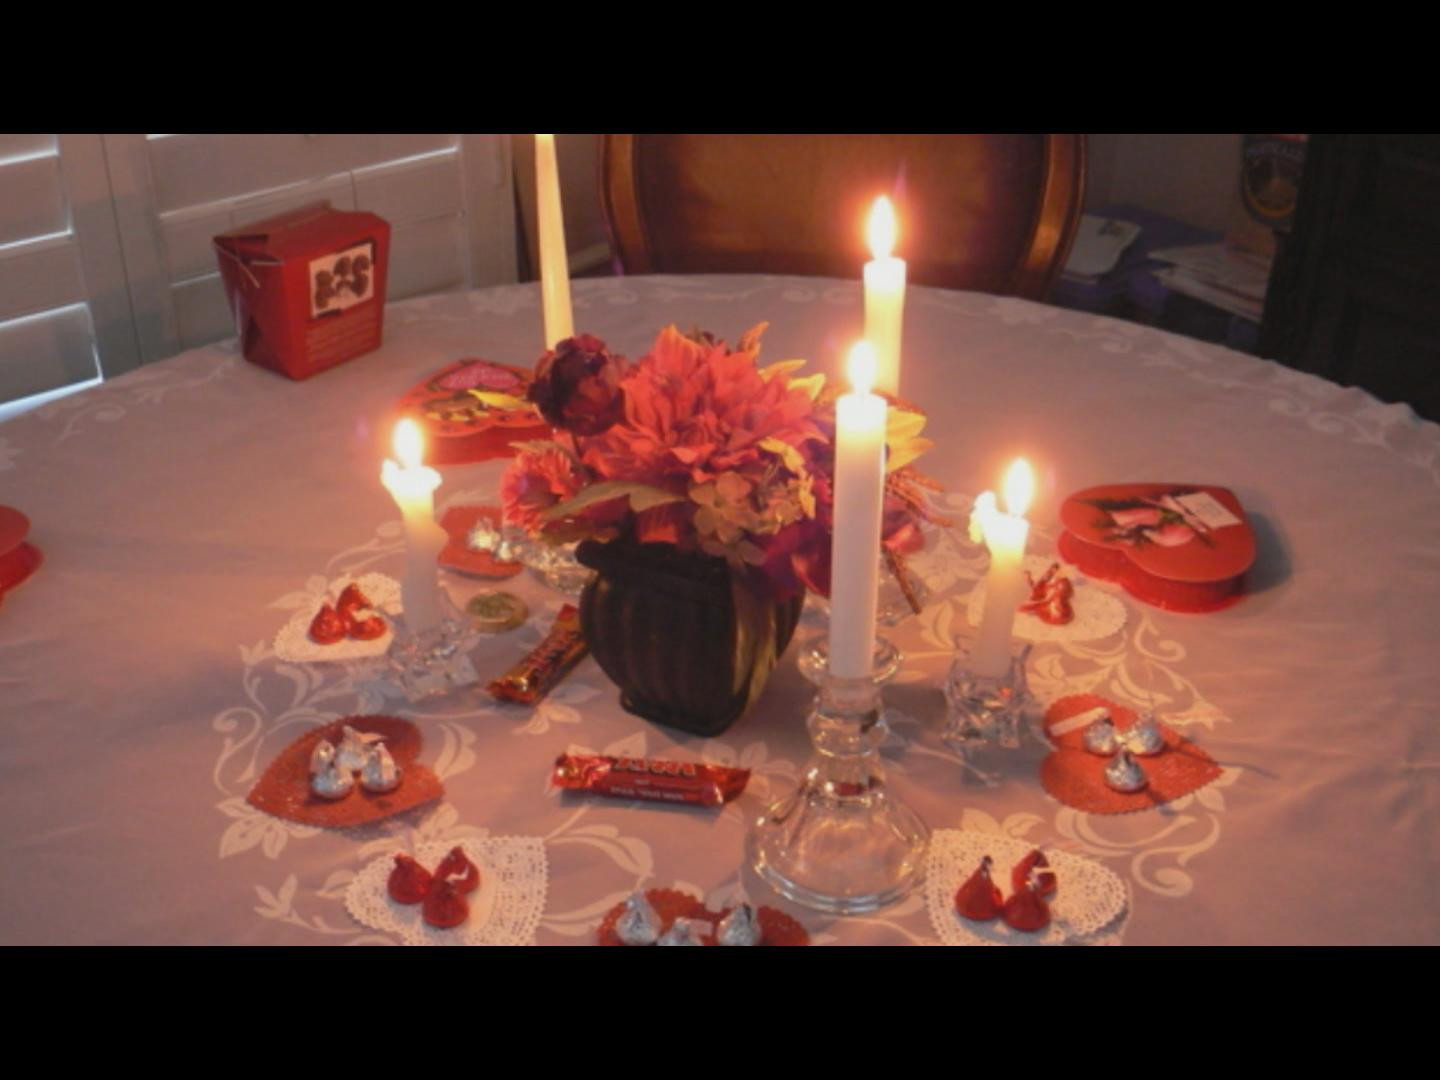 Romantic Dinner For Two At Home  Love Romance How To Plan a Romantic Dinner at Home for